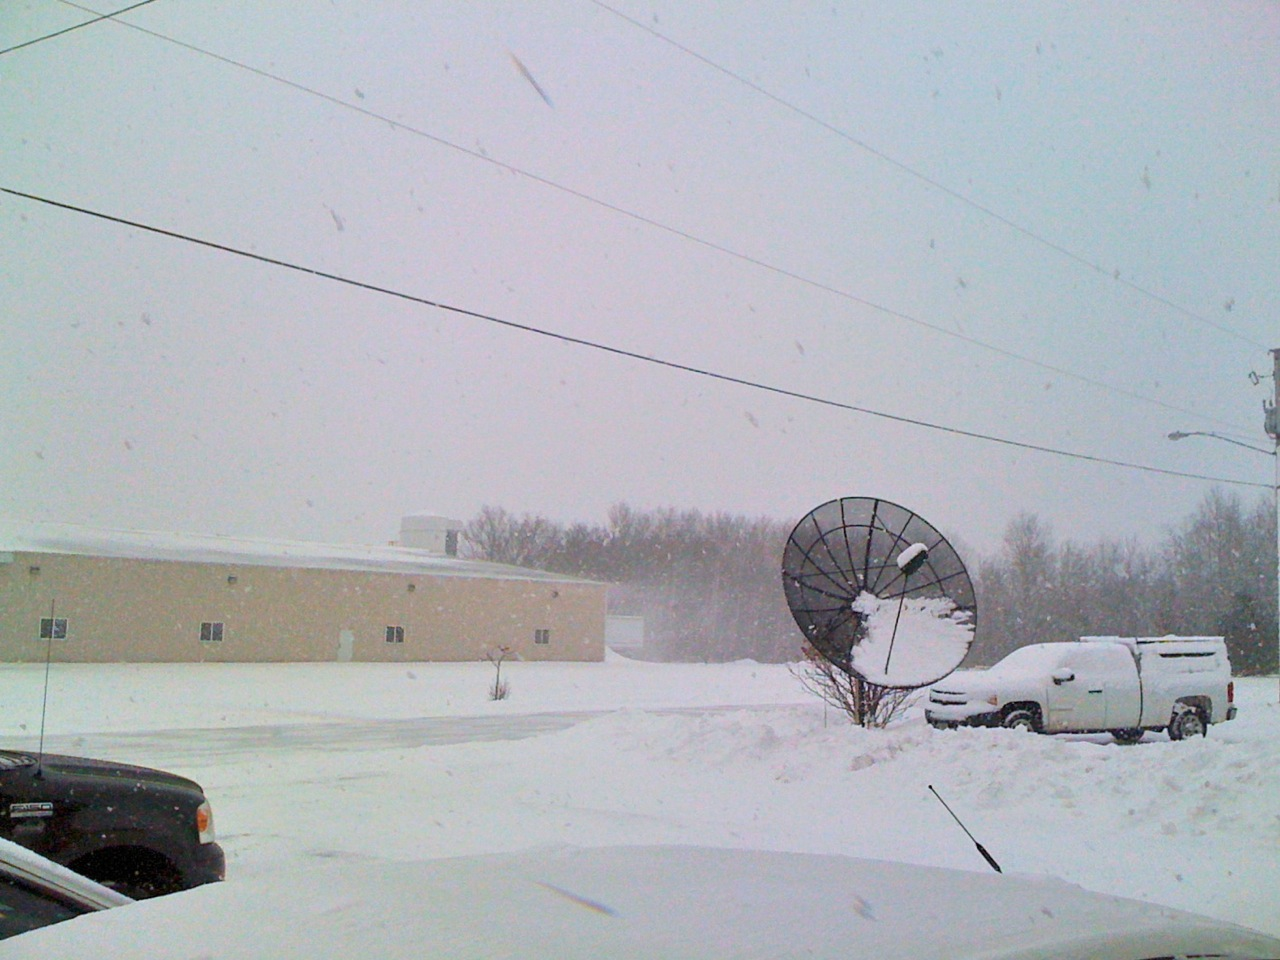 Look at the snow blowing off the roof of the warehouse